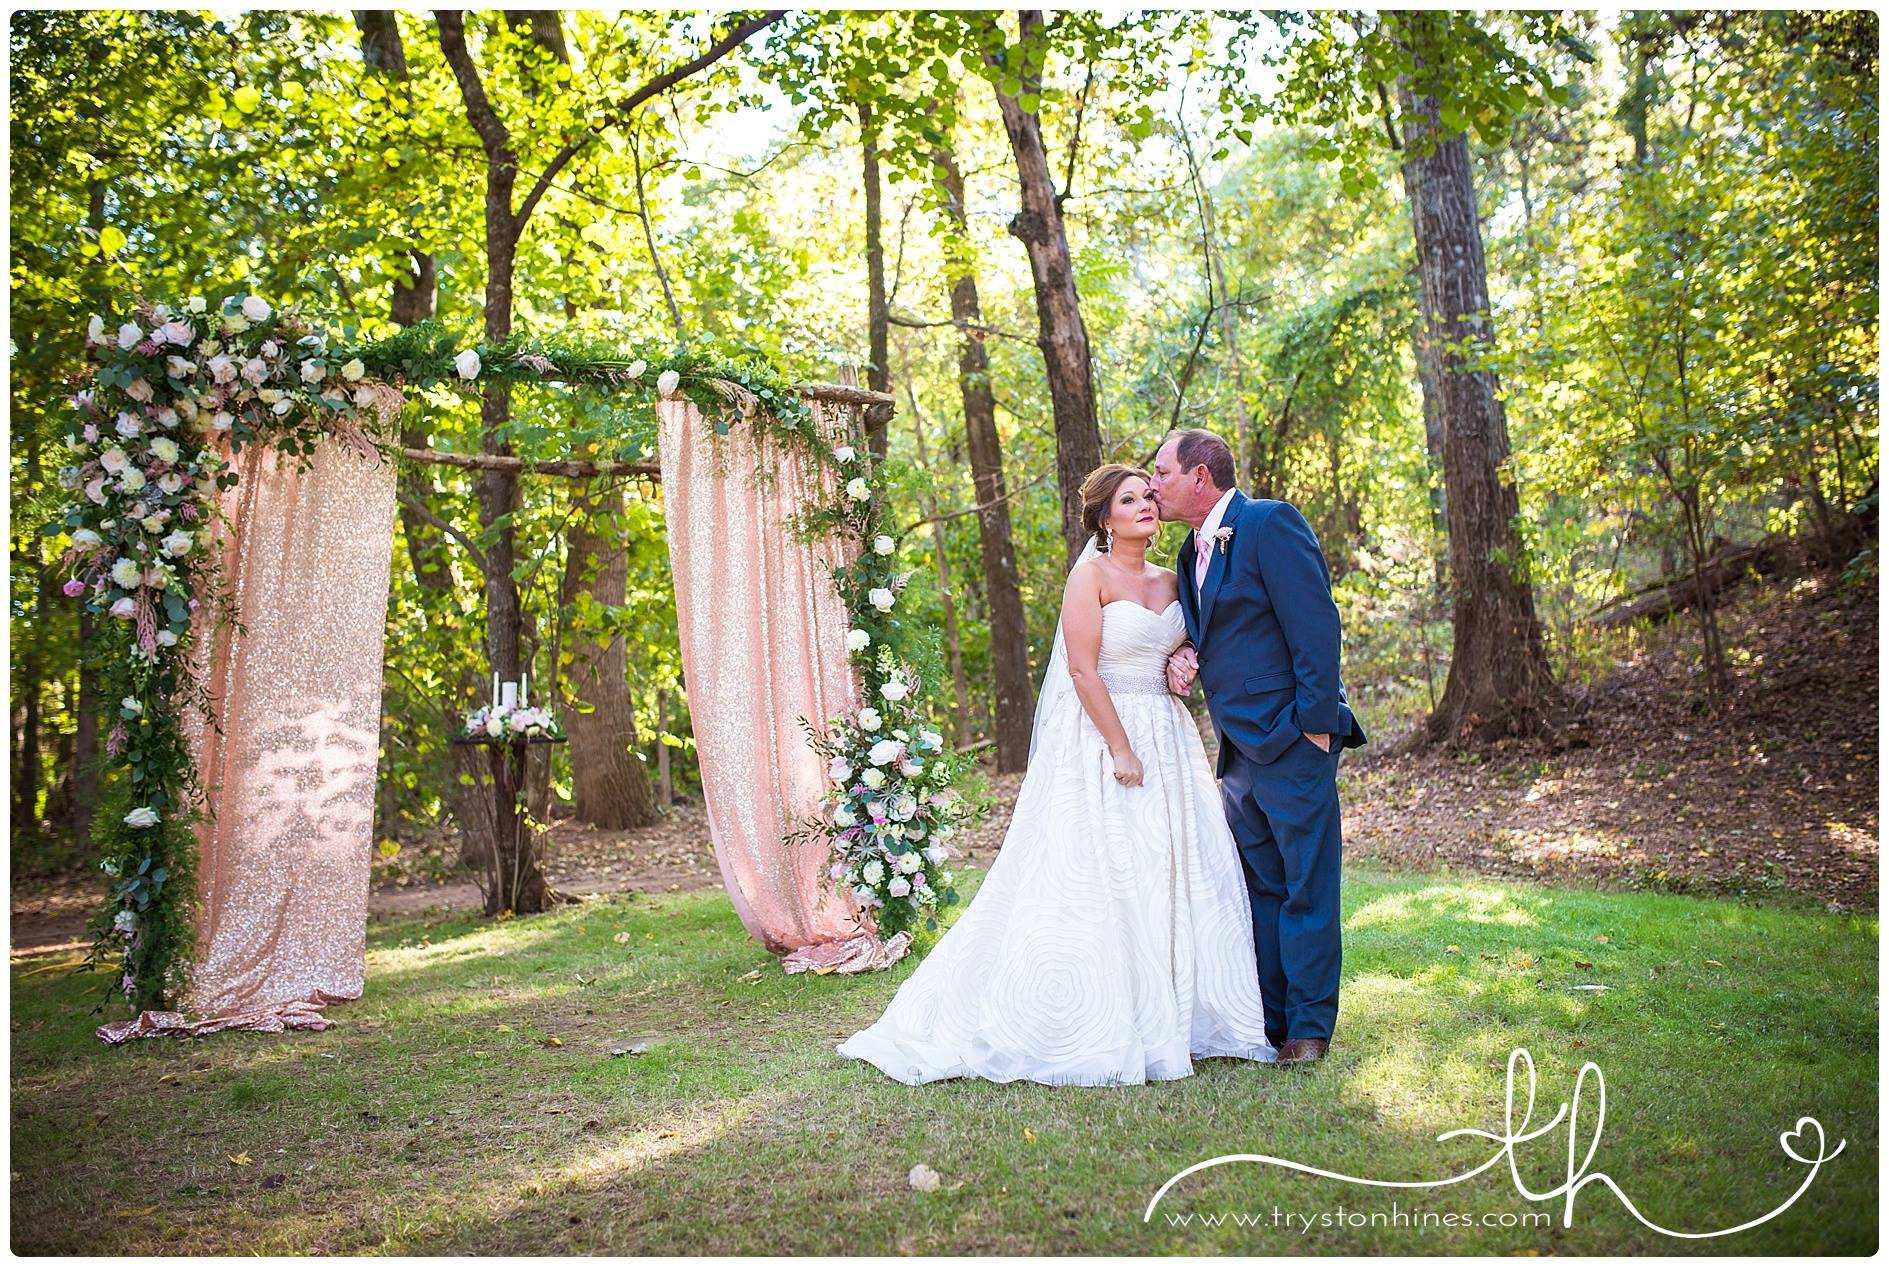 Tryston Hines Photography , from  Monica + Ryan 's wedding. This dad had the sweetest reaction to seeing his daughter as a bride... Go check it out in their blog post. Prepare to CRY.